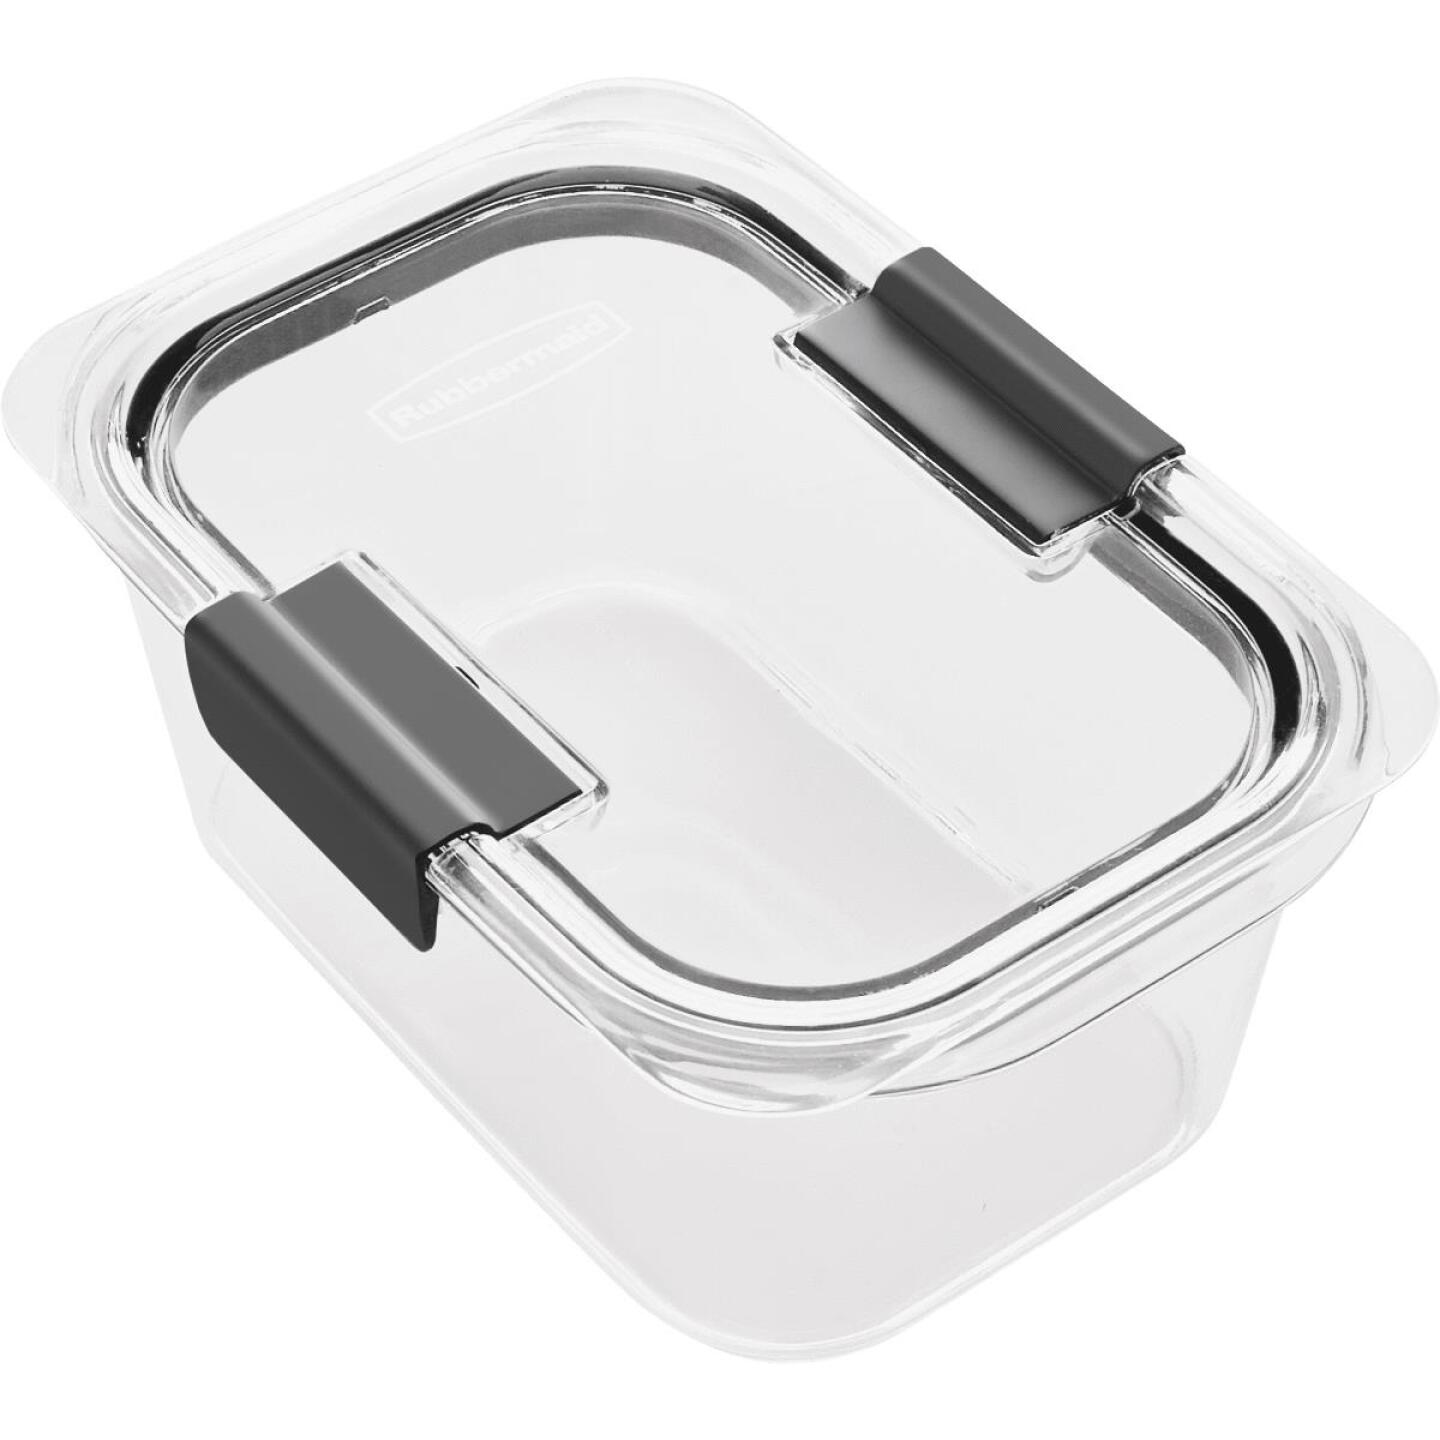 Rubbermaid Brilliance 4.7 C. Clear Rectangle Food Storage Container Image 1